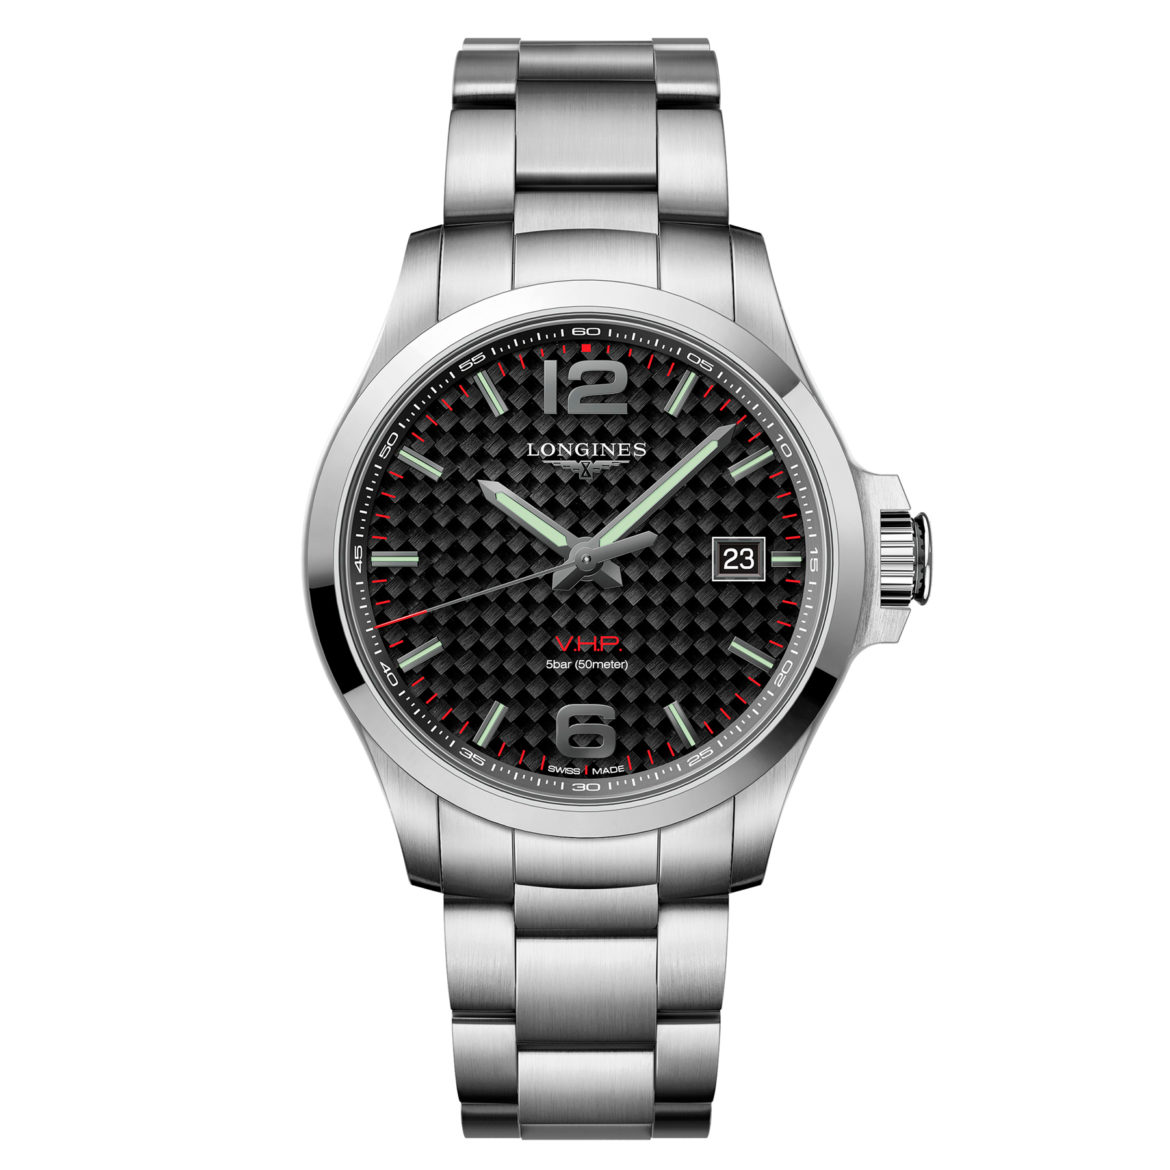 LONGINES</br/>Conquest VHP</br/>L37264666